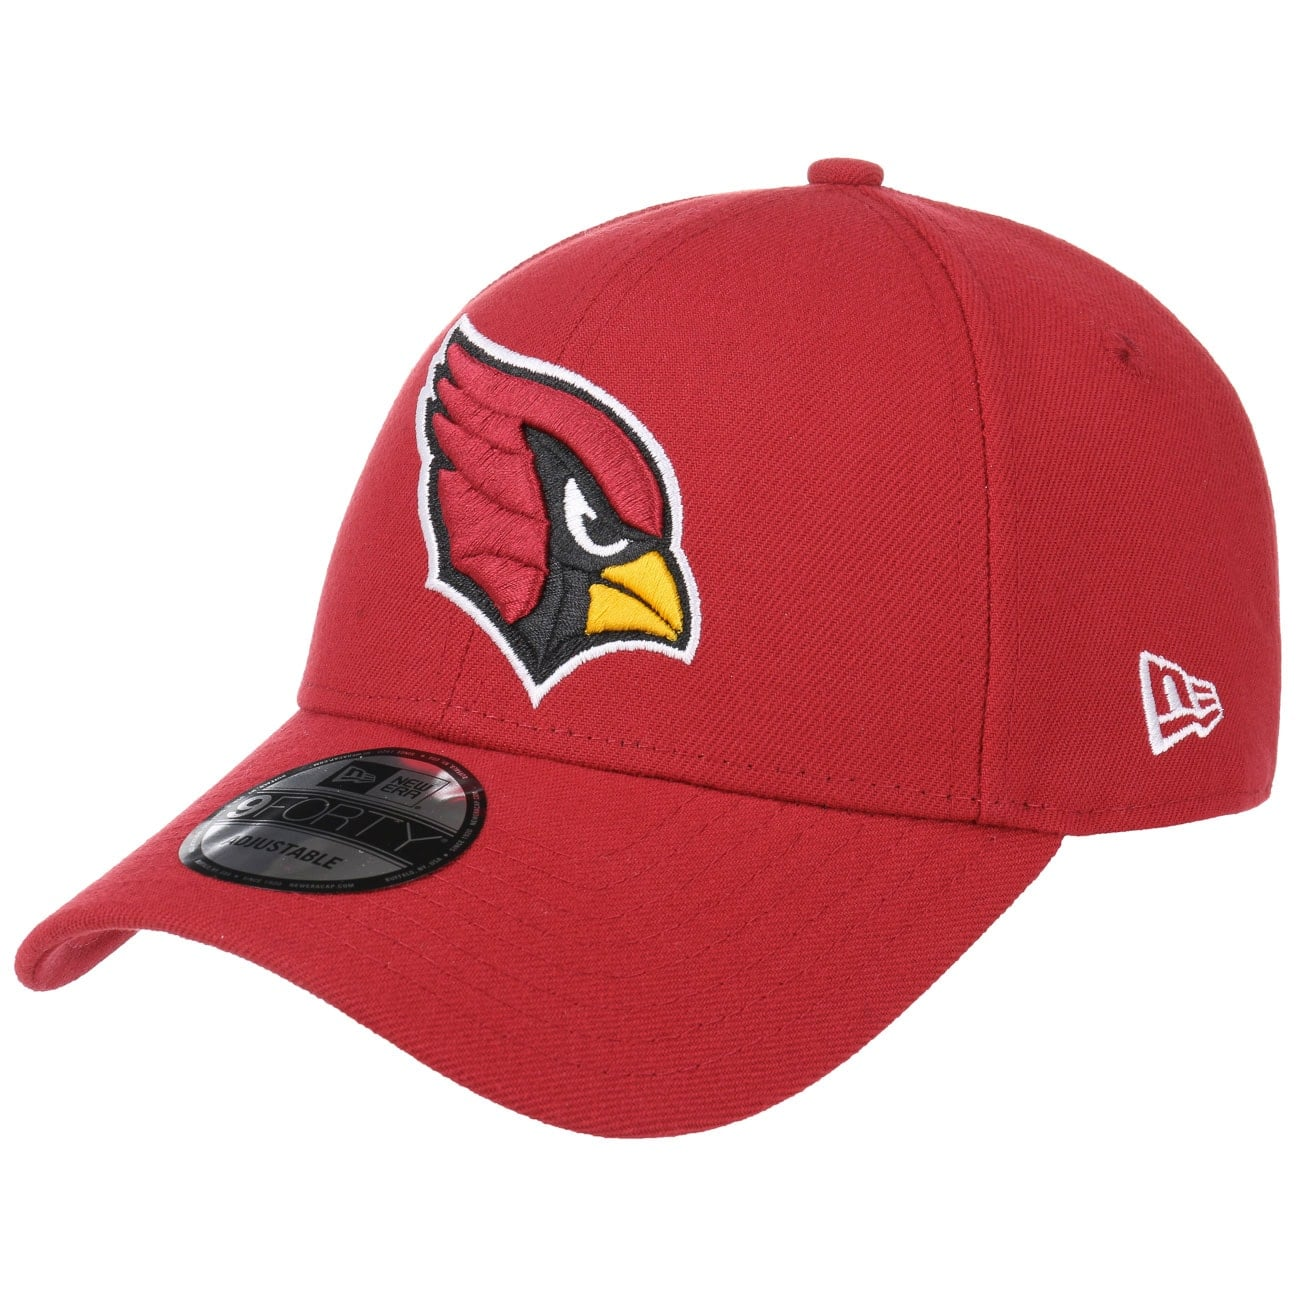 9forty-the-league-cardinals-cap-by-new-era-basecap